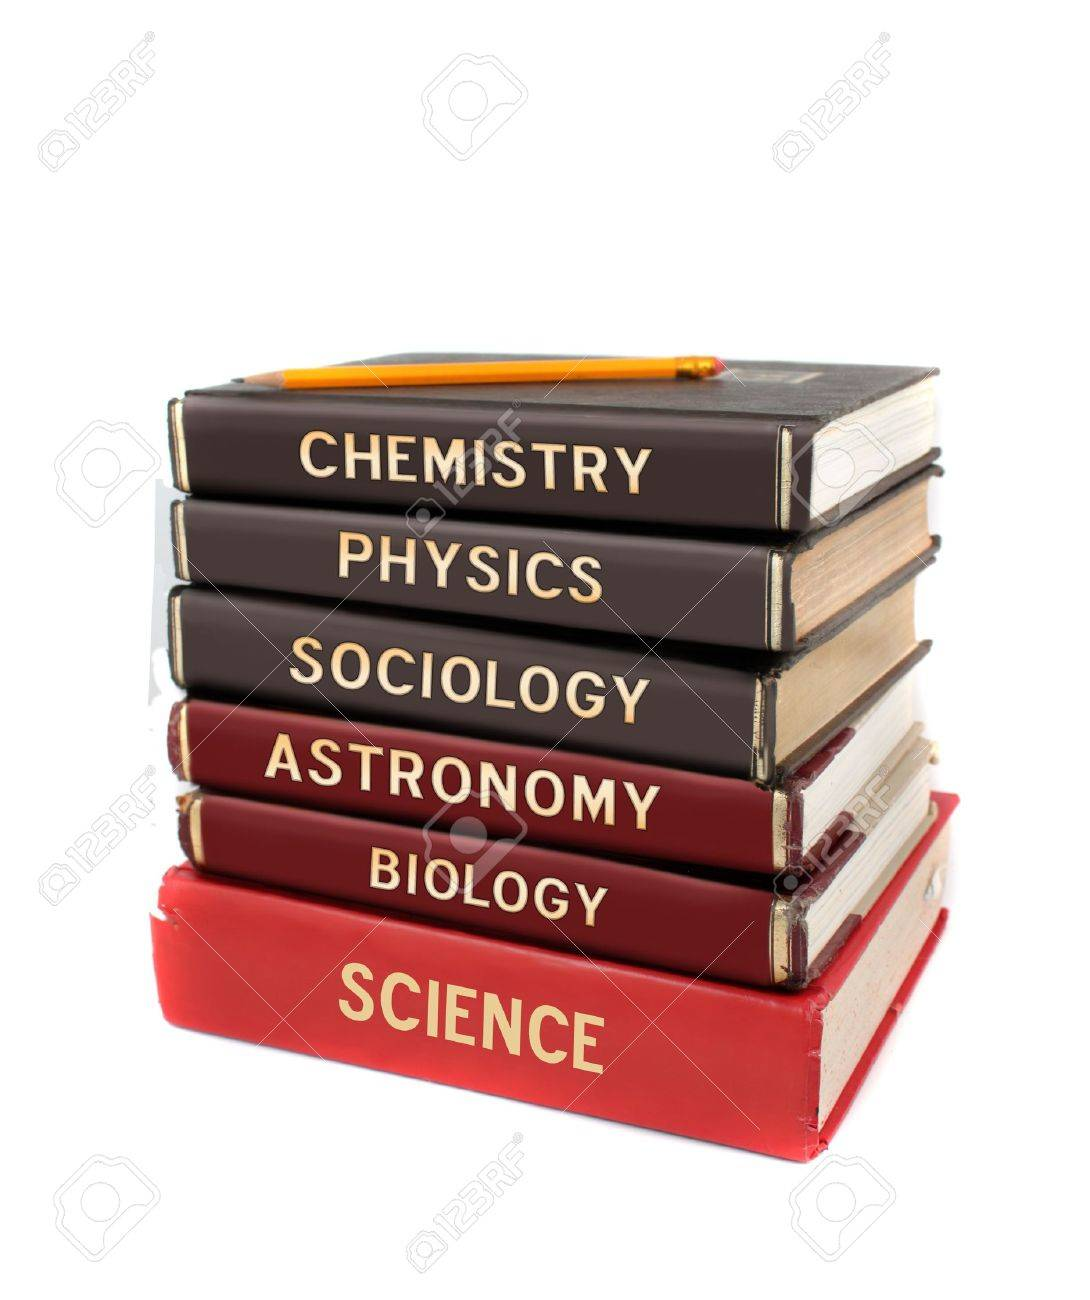 Tall stack of different university level science textbooks like